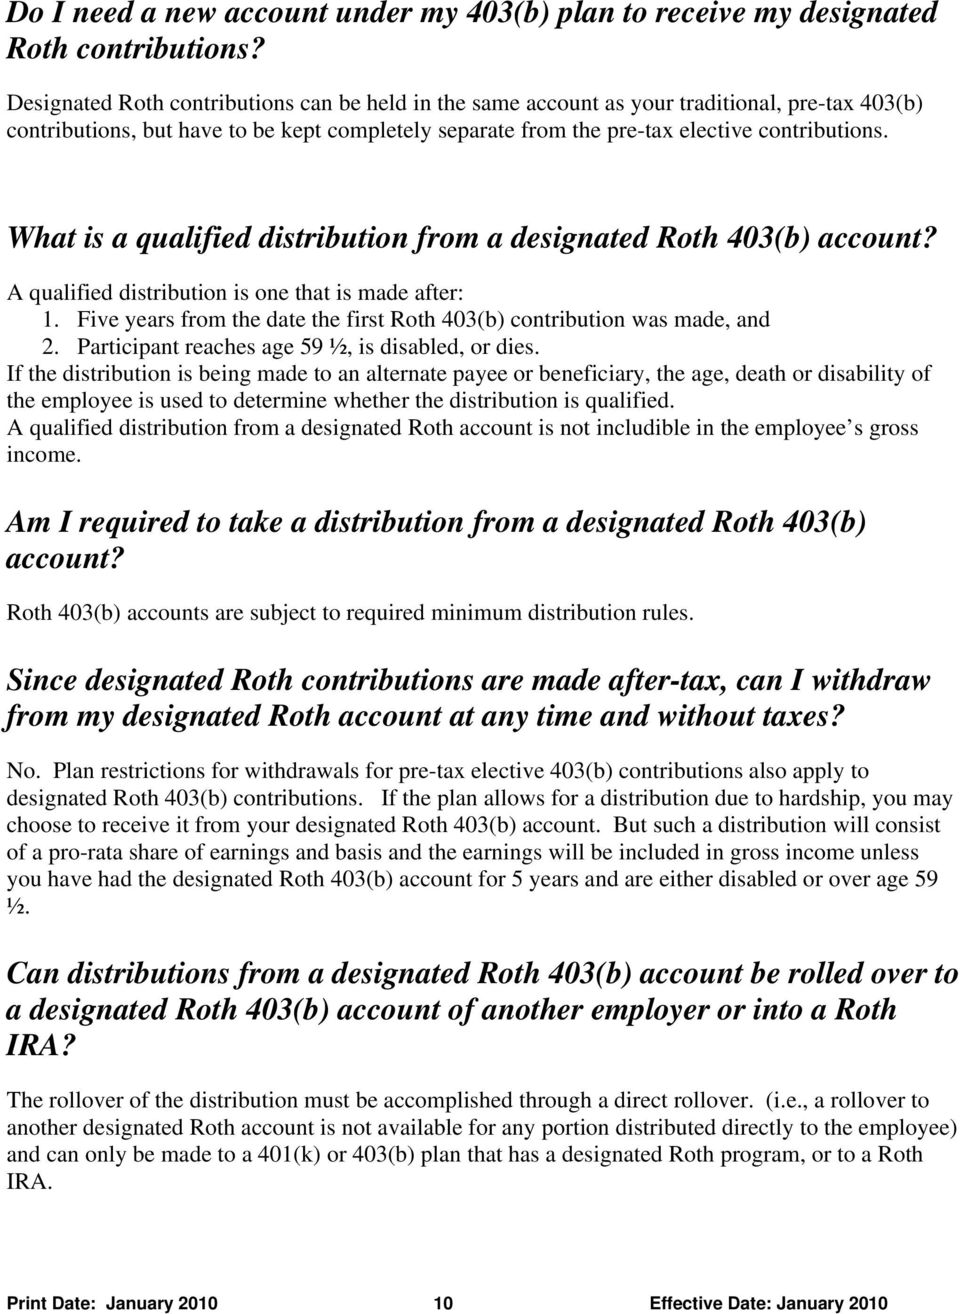 What is a qualified distribution from a designated Roth 403(b) account? A qualified distribution is one that is made after: 1.